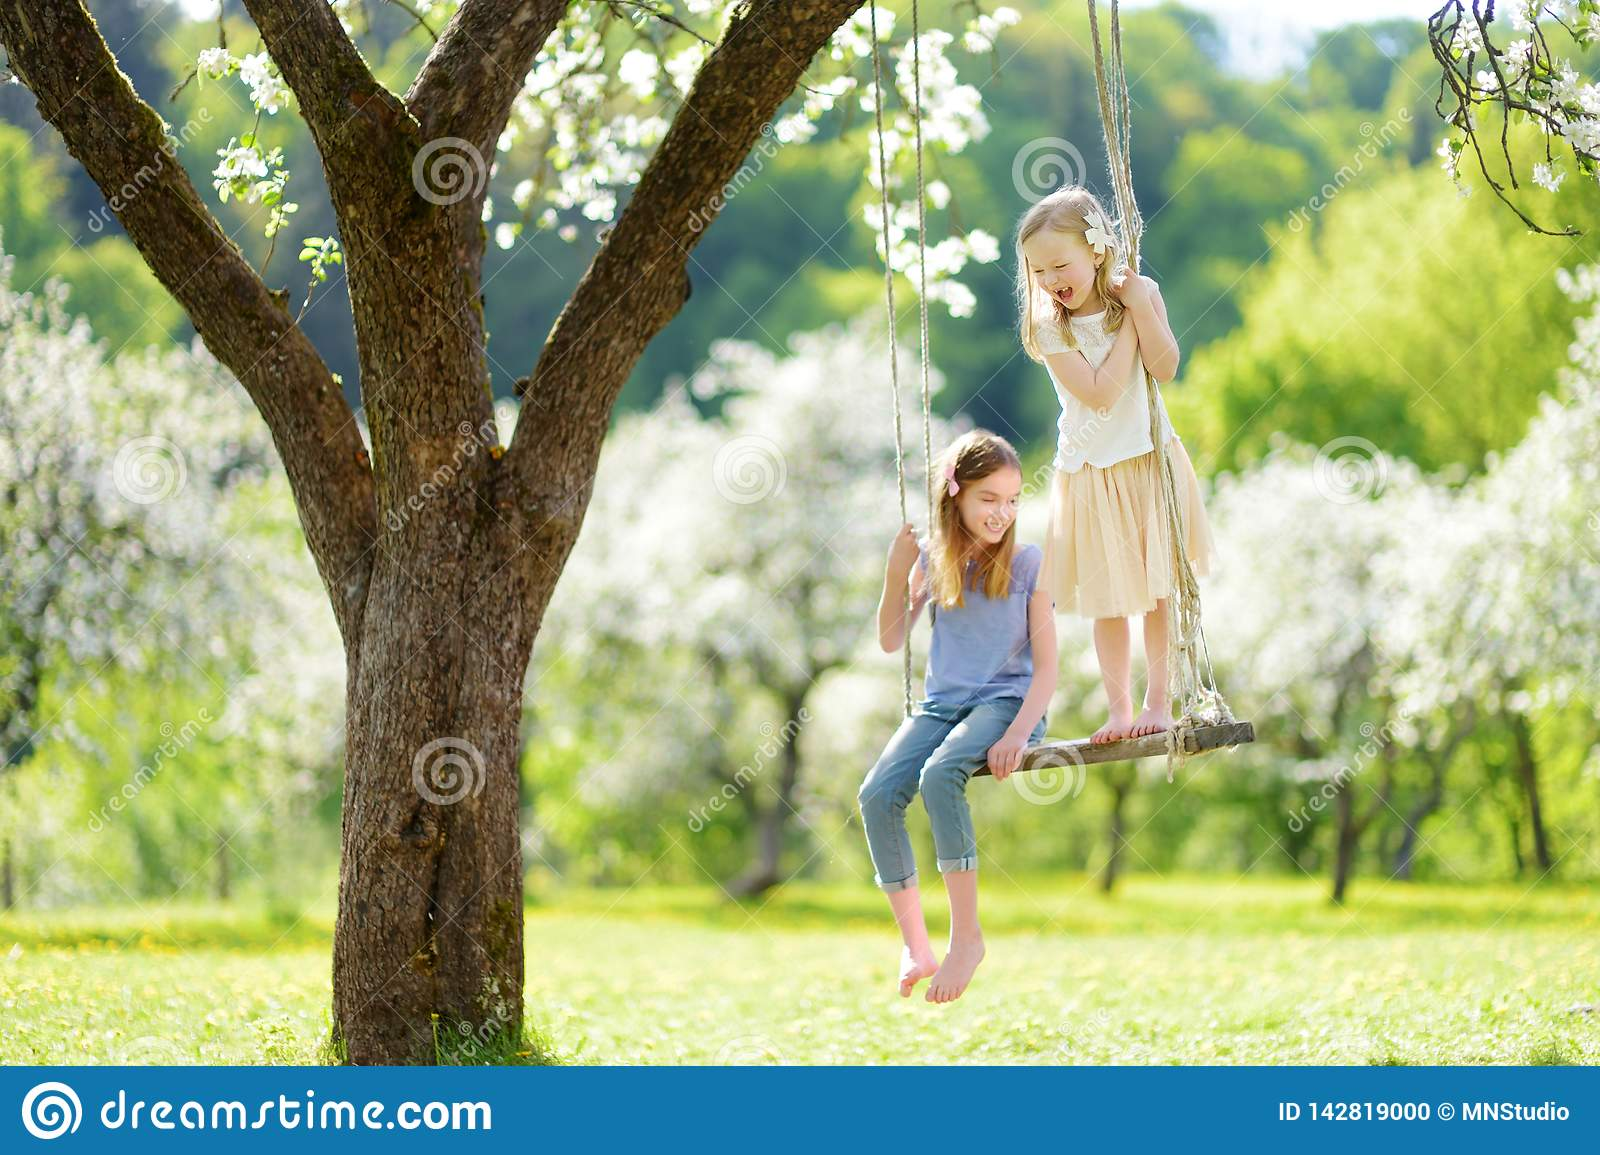 Two cute sisters having fun on a swing in blossoming old apple tree garden outdoors on sunny spring day